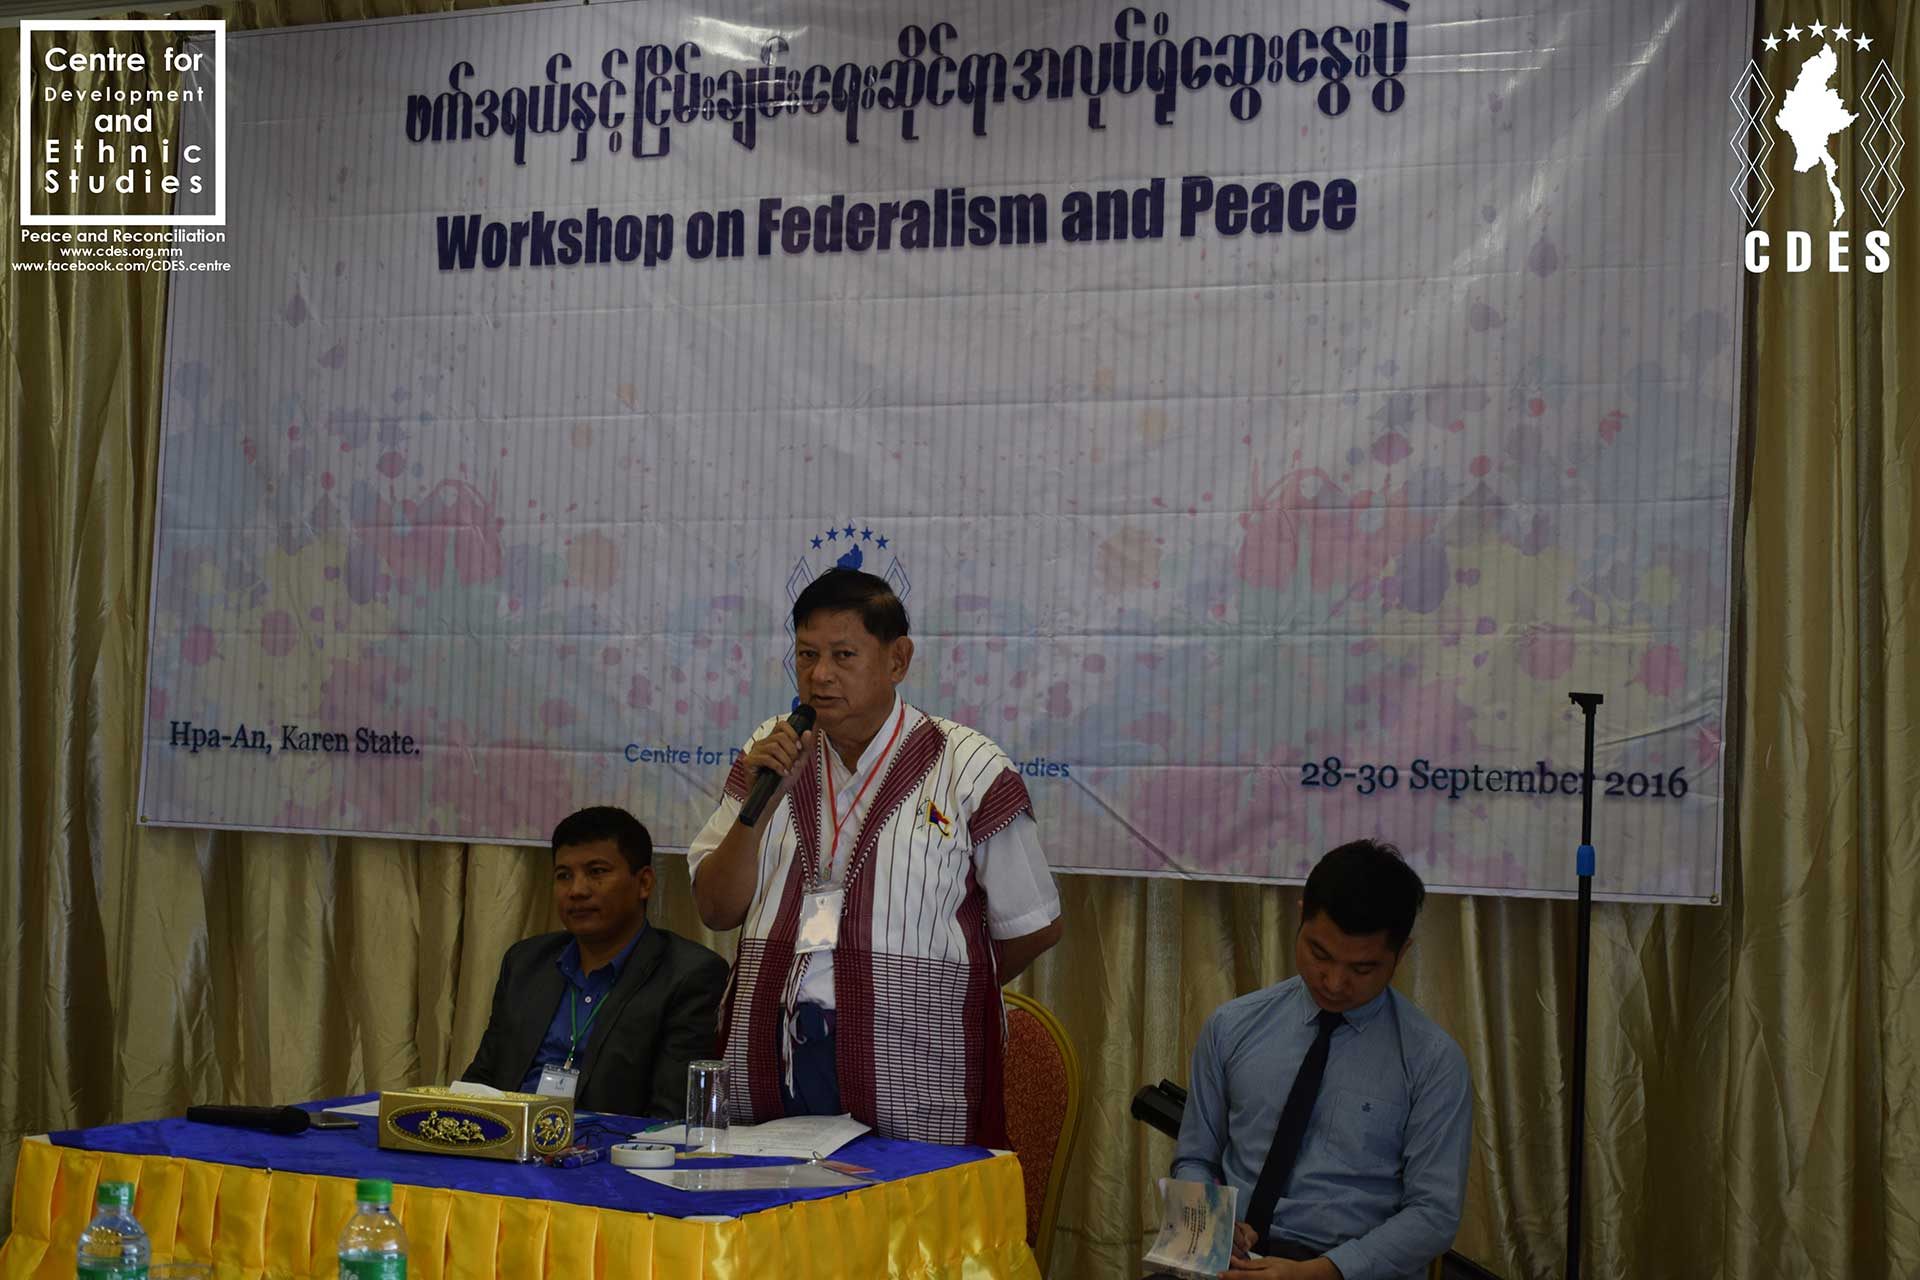 CDES gets lauded for federalism and peace workshop